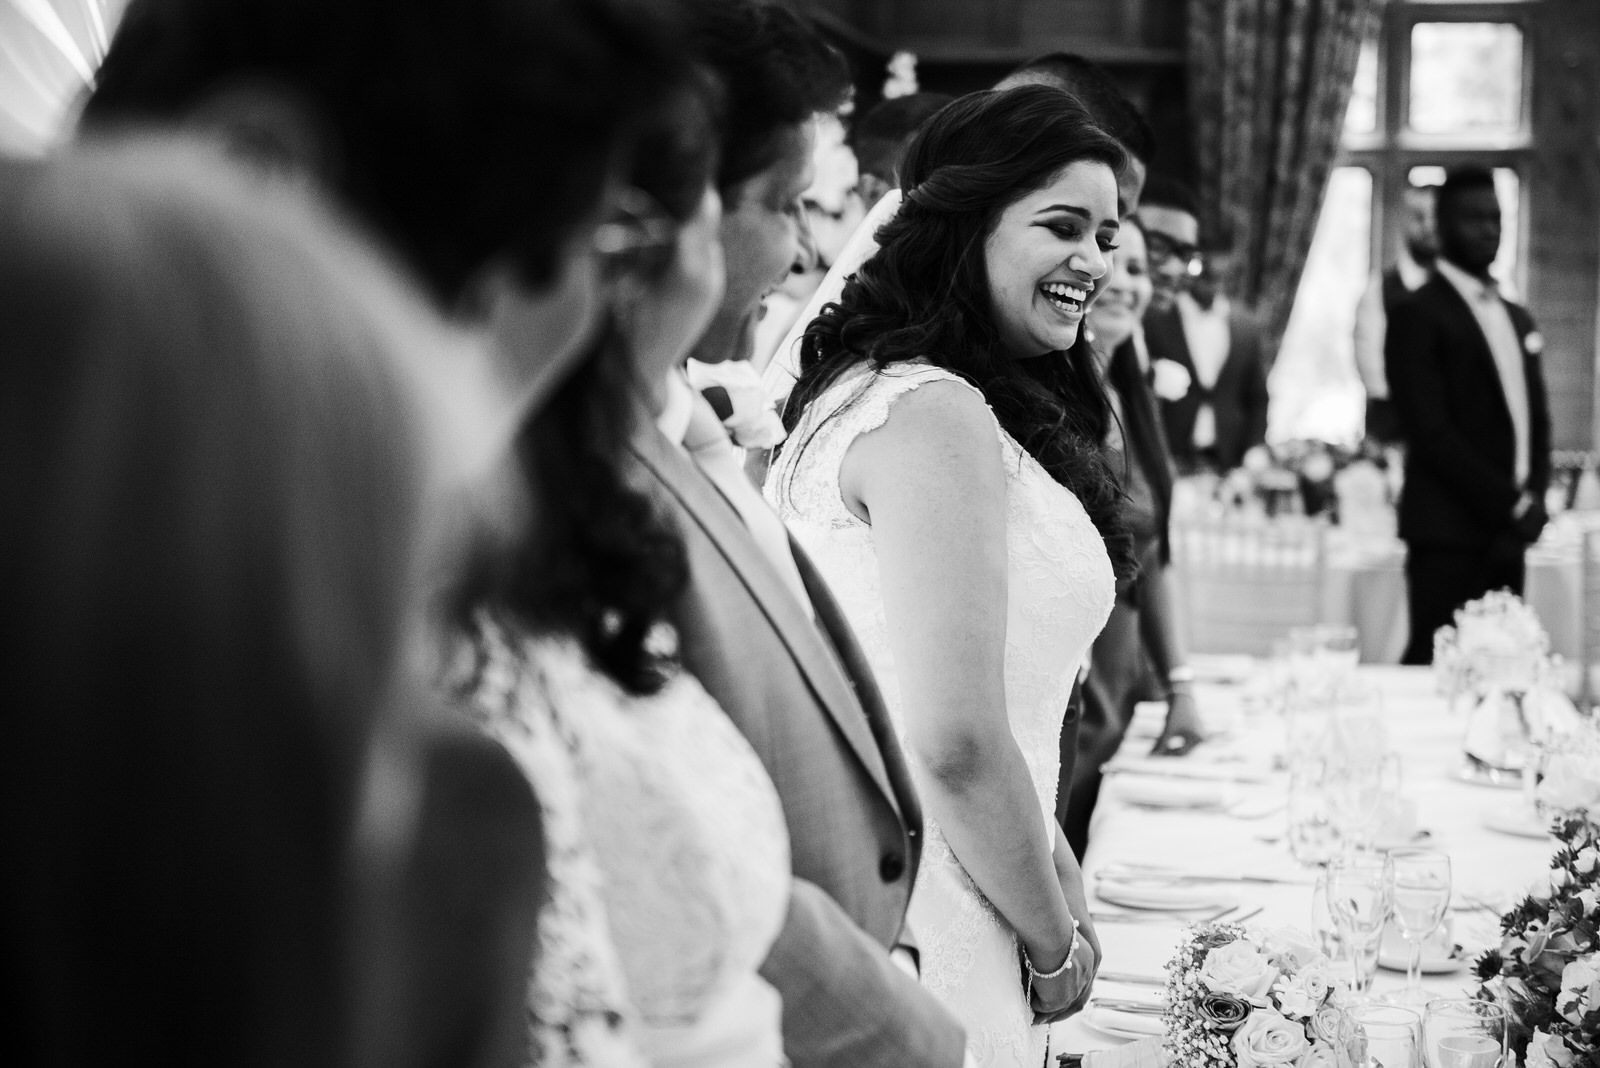 Bride smiles in black and white photo as brother delivers speech